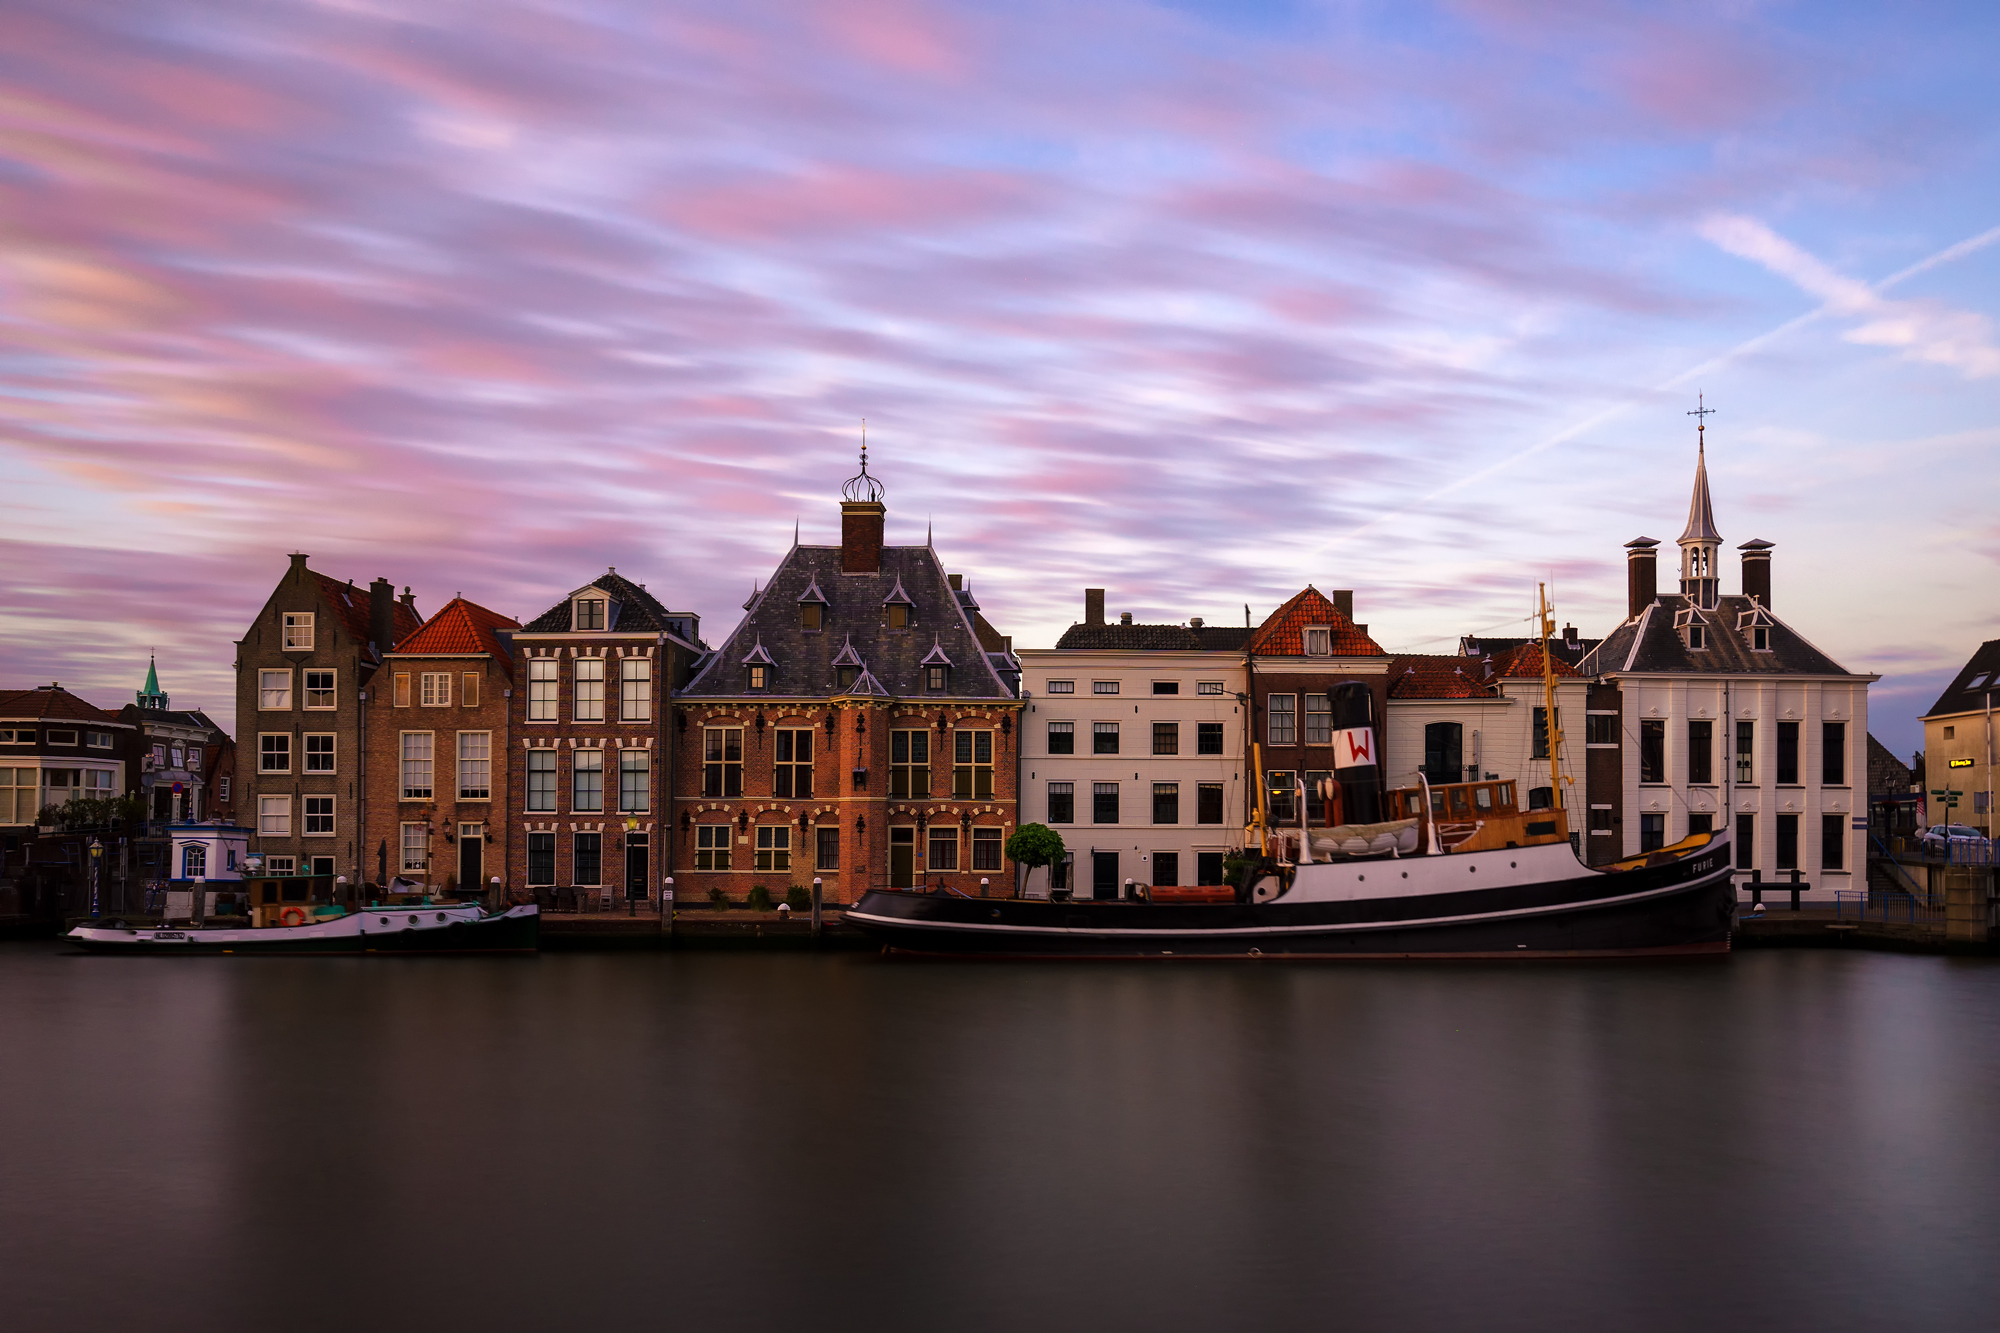 Old Town of Maasluis | South Holland, Netherlands